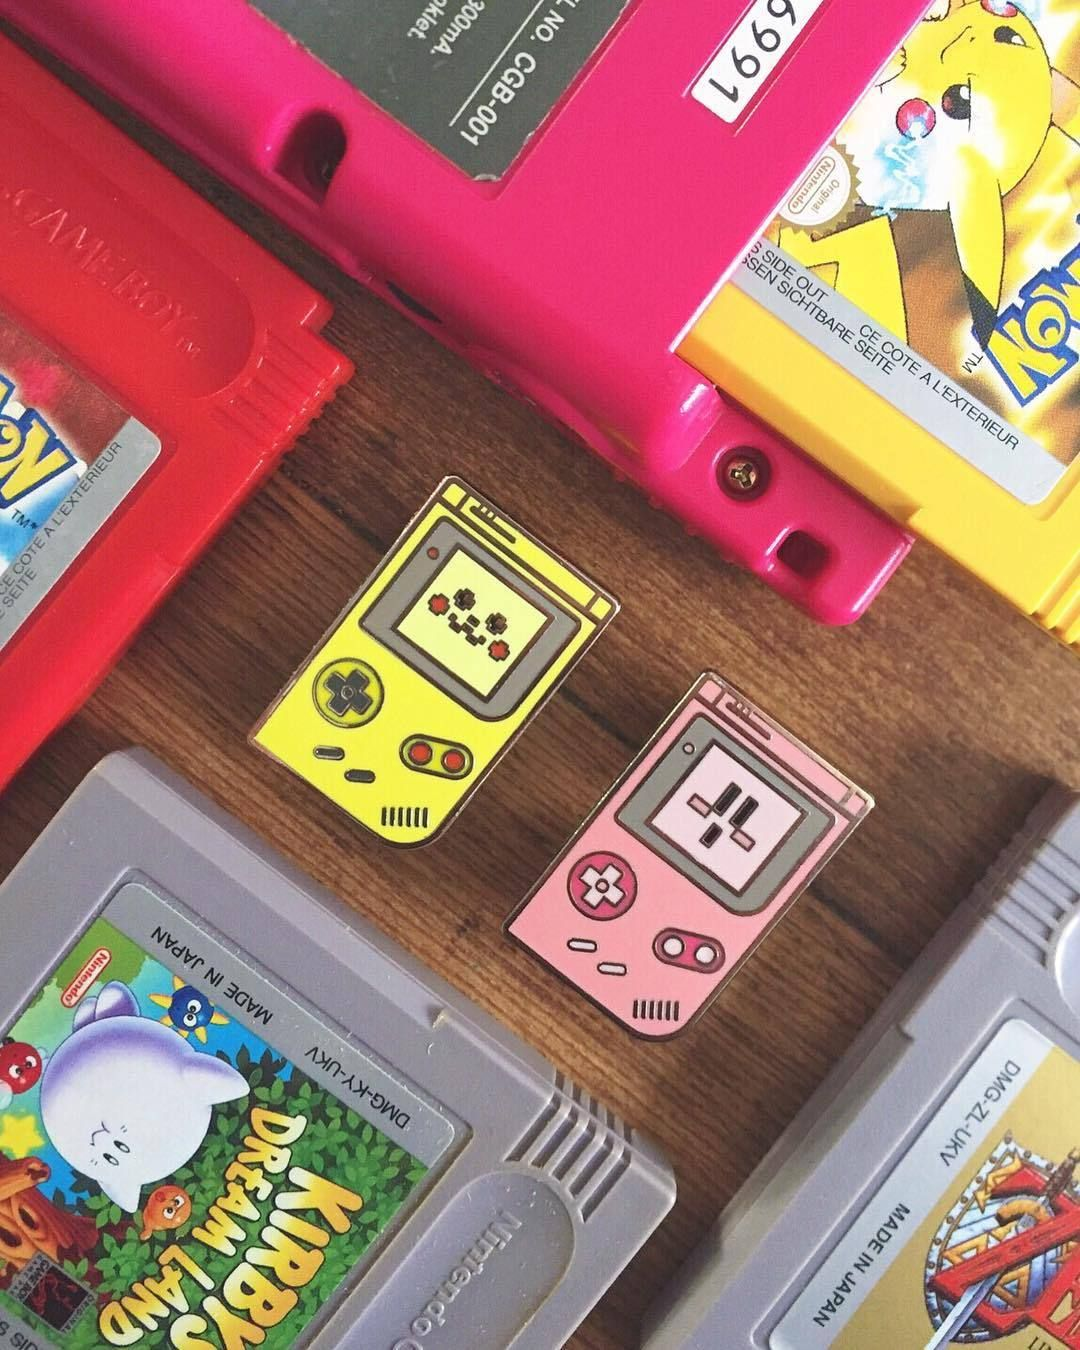 Gameboy Pins made by getalifedesigns